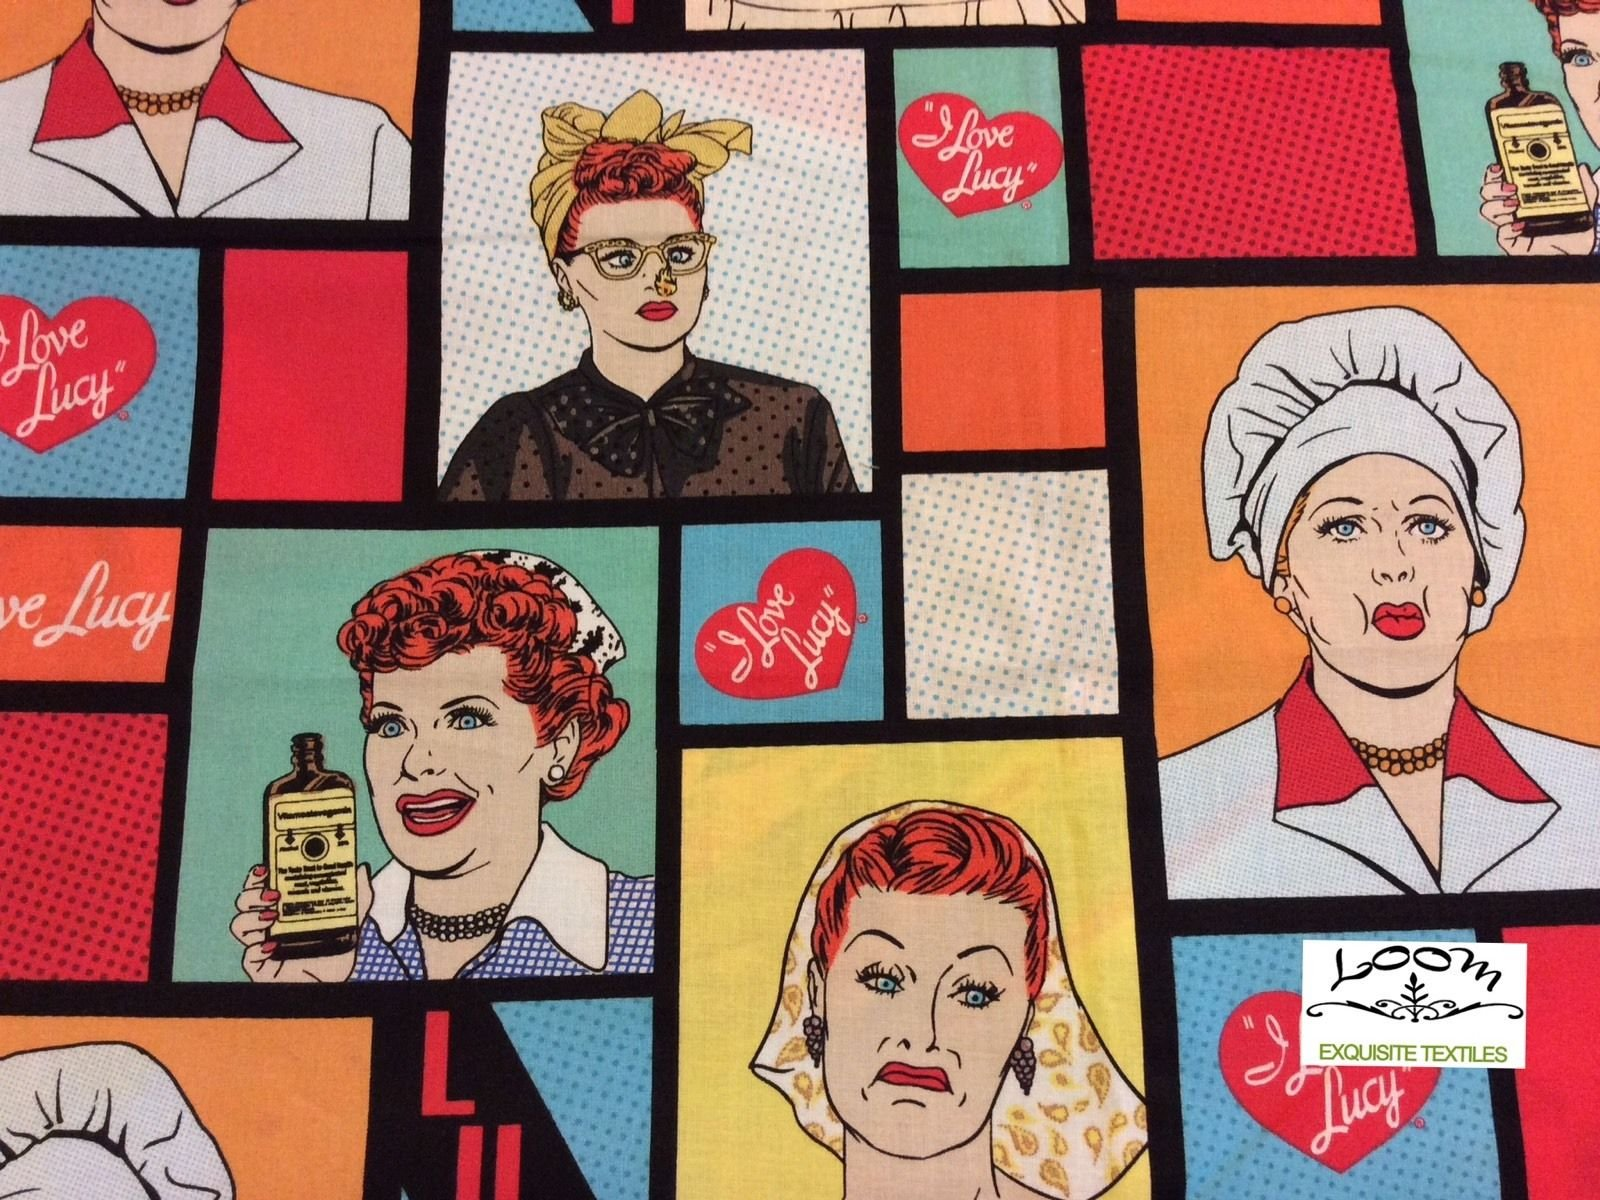 I Love Lucy Lucille Ball Retro Television Comedian Cotton Quilting Fabric Md61